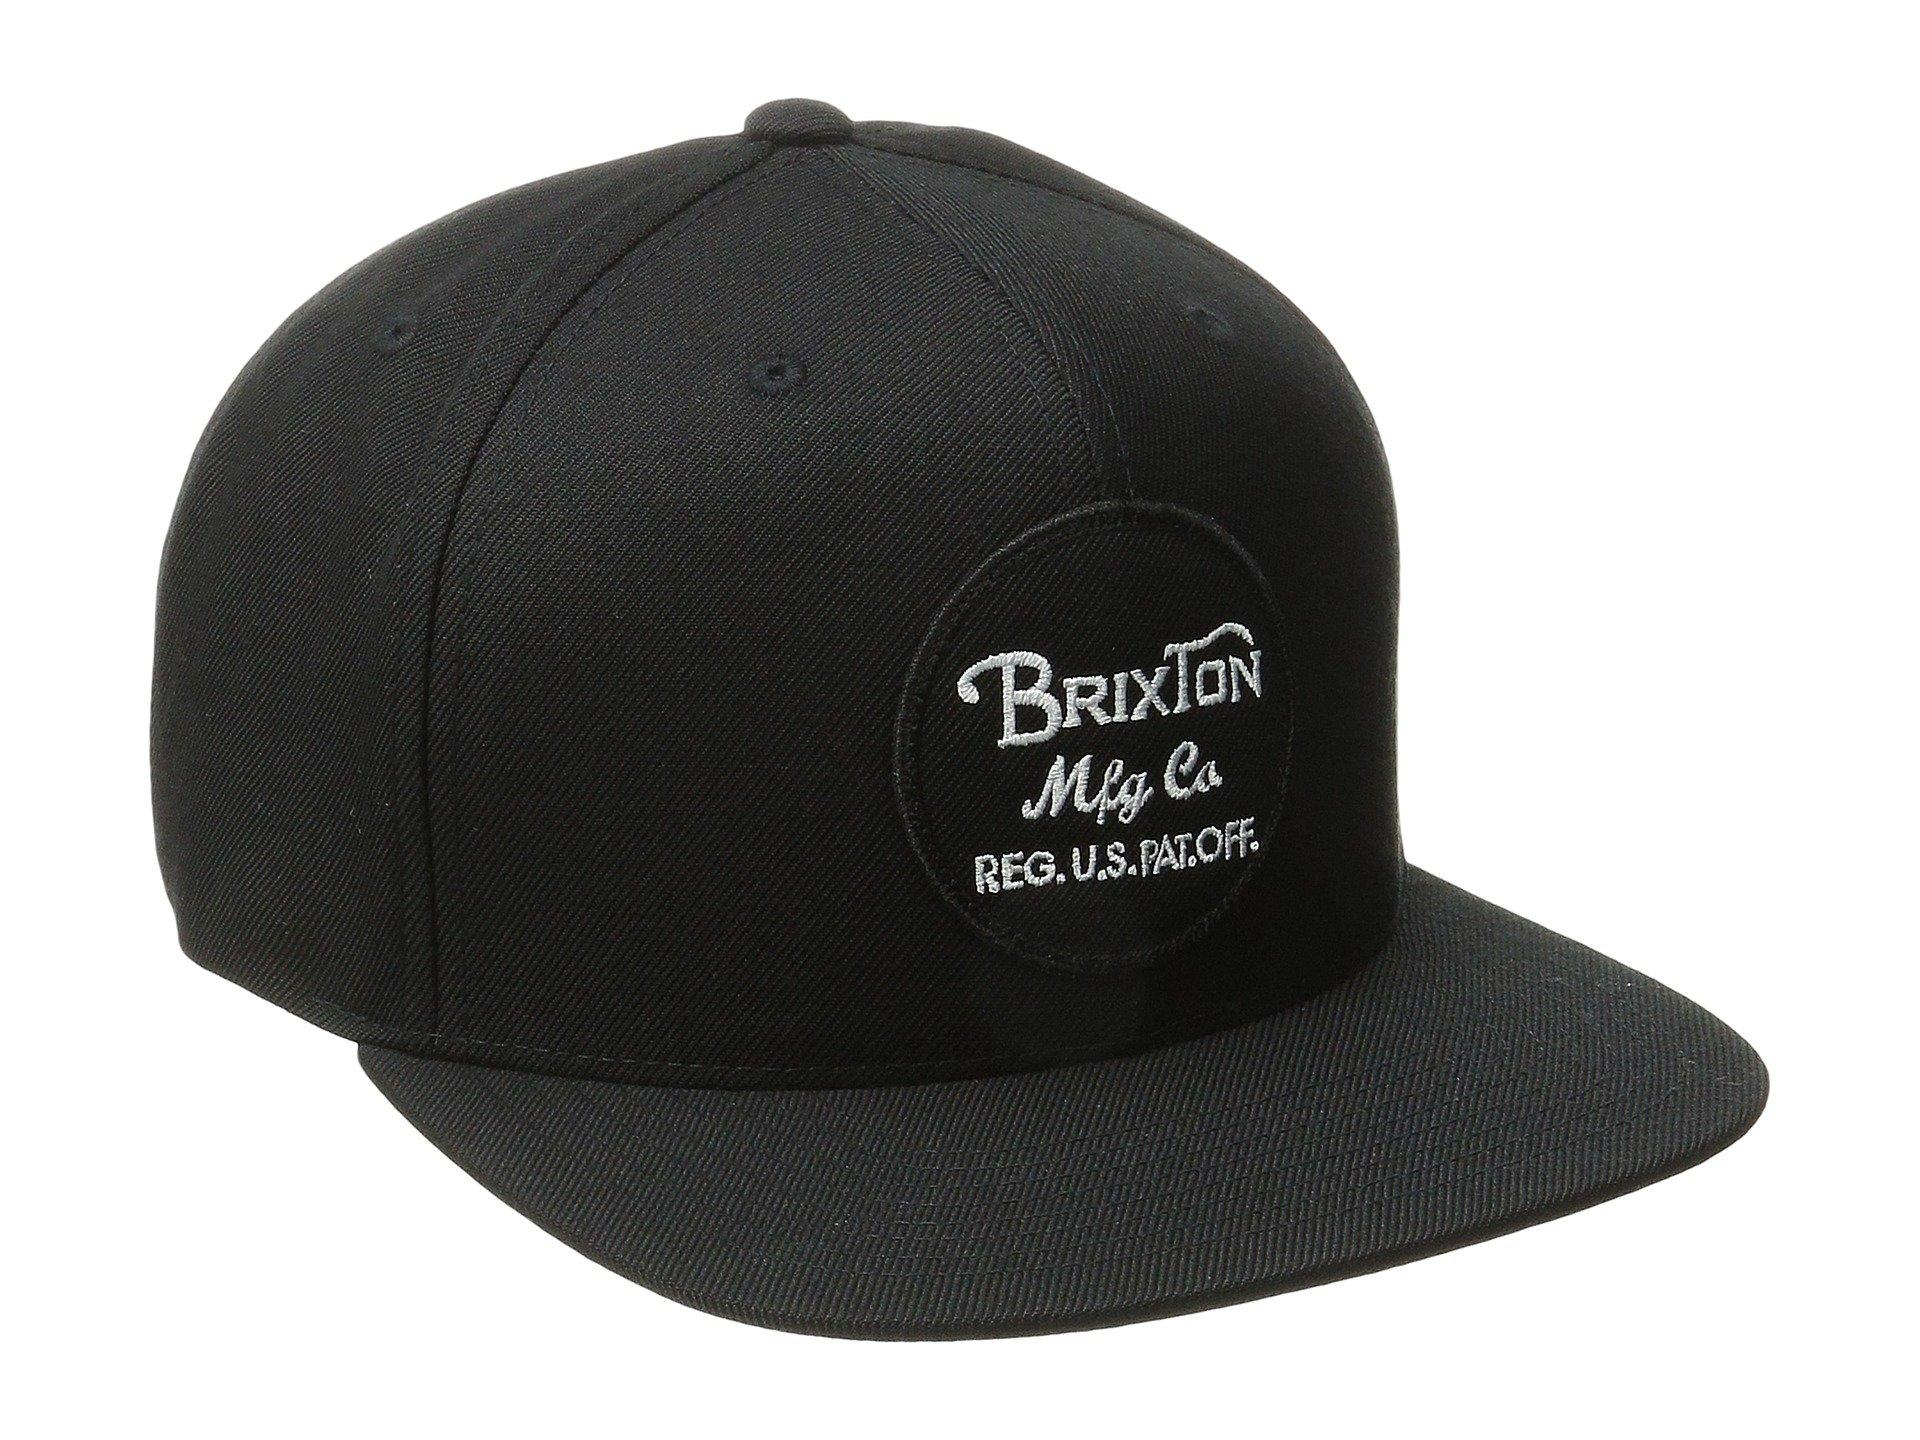 c6b48c58a4666 Lyst - Brixton Wheeler Snapback (burgundy black) Caps in Black for Men